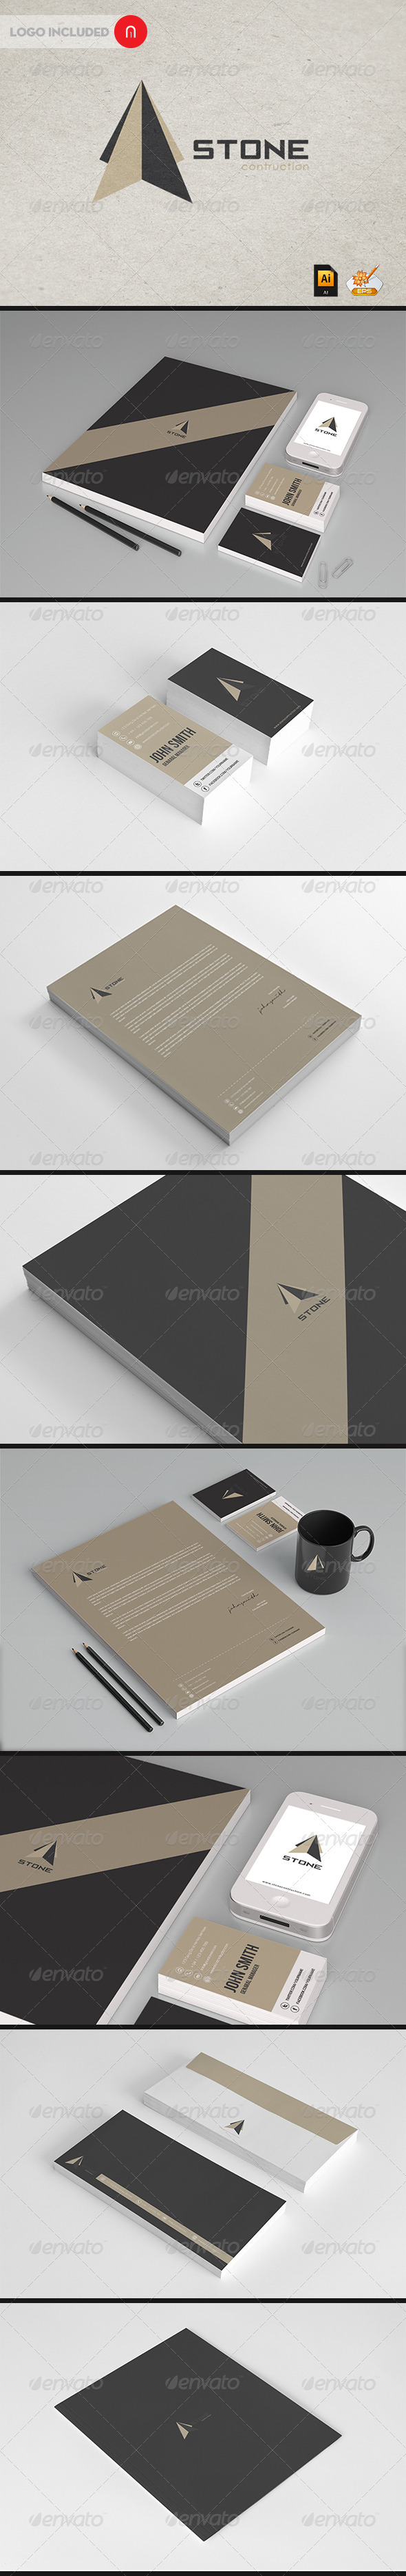 Stationary & Identity - Stone contructions - Stationery Print Templates